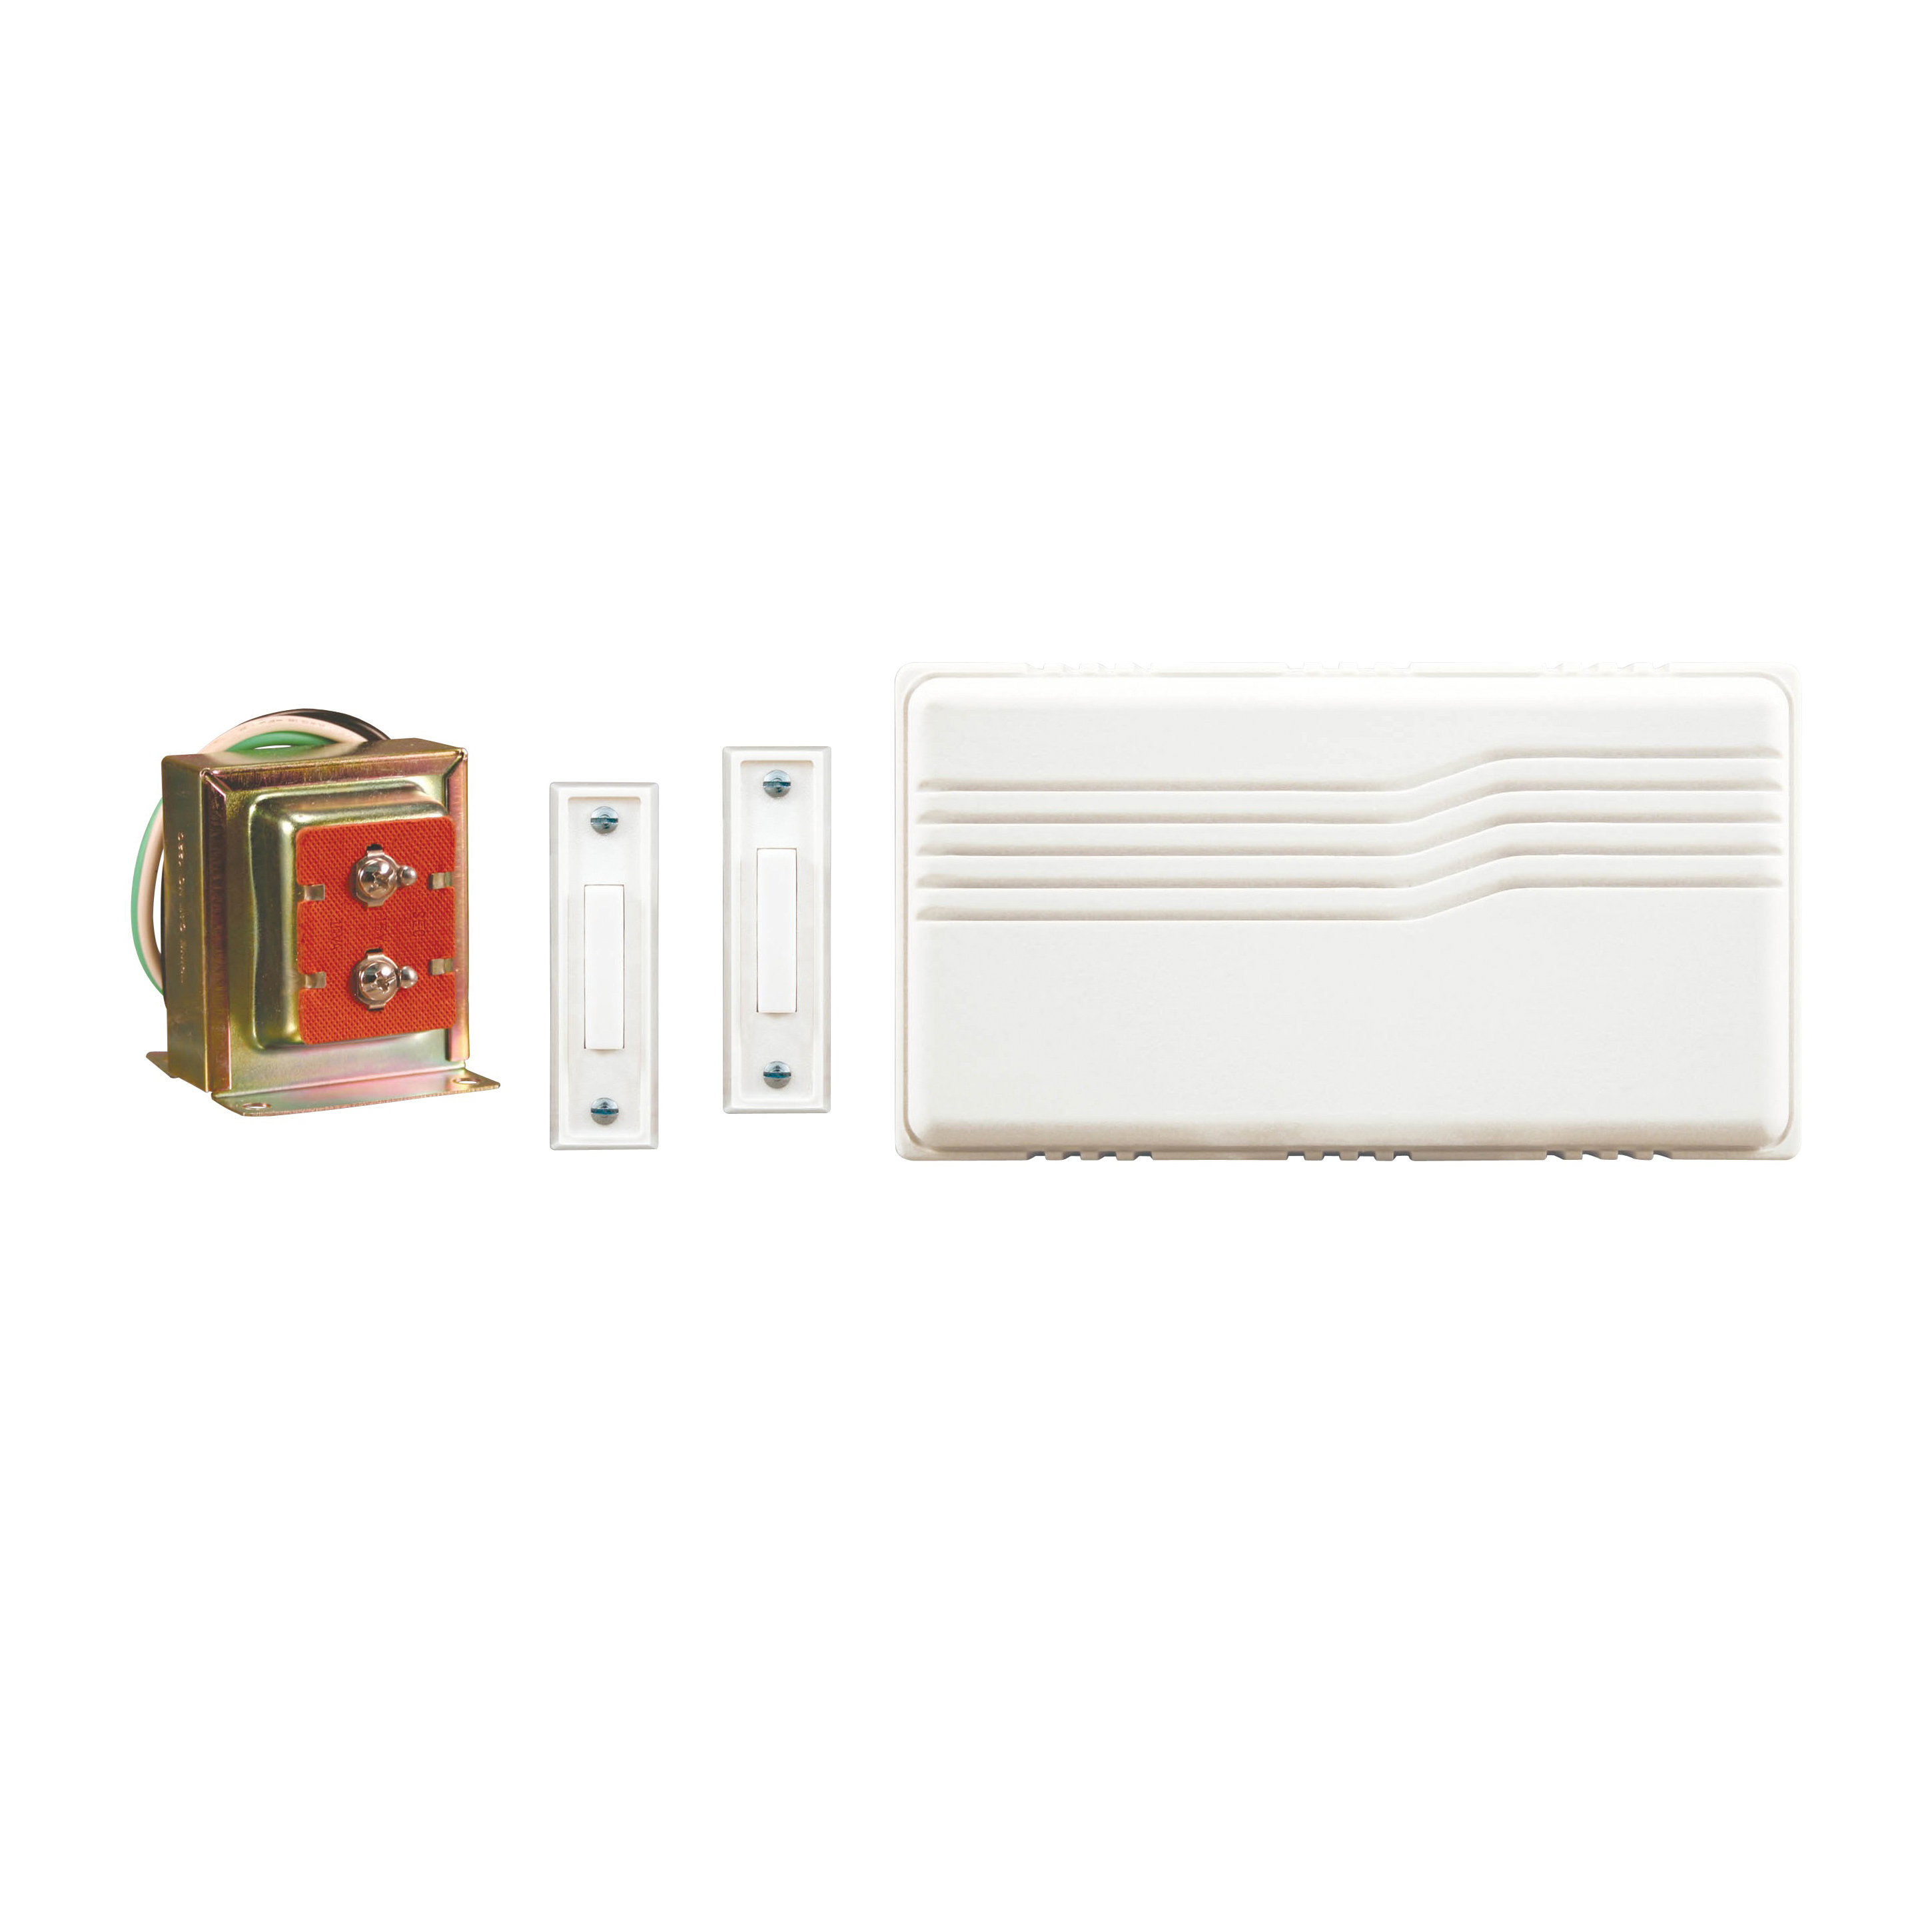 Picture of Heath Zenith SL-27102-02 Doorbell Kit, Wired, 16 V, Ding, Ding-Dong Tone, 95 dB, White